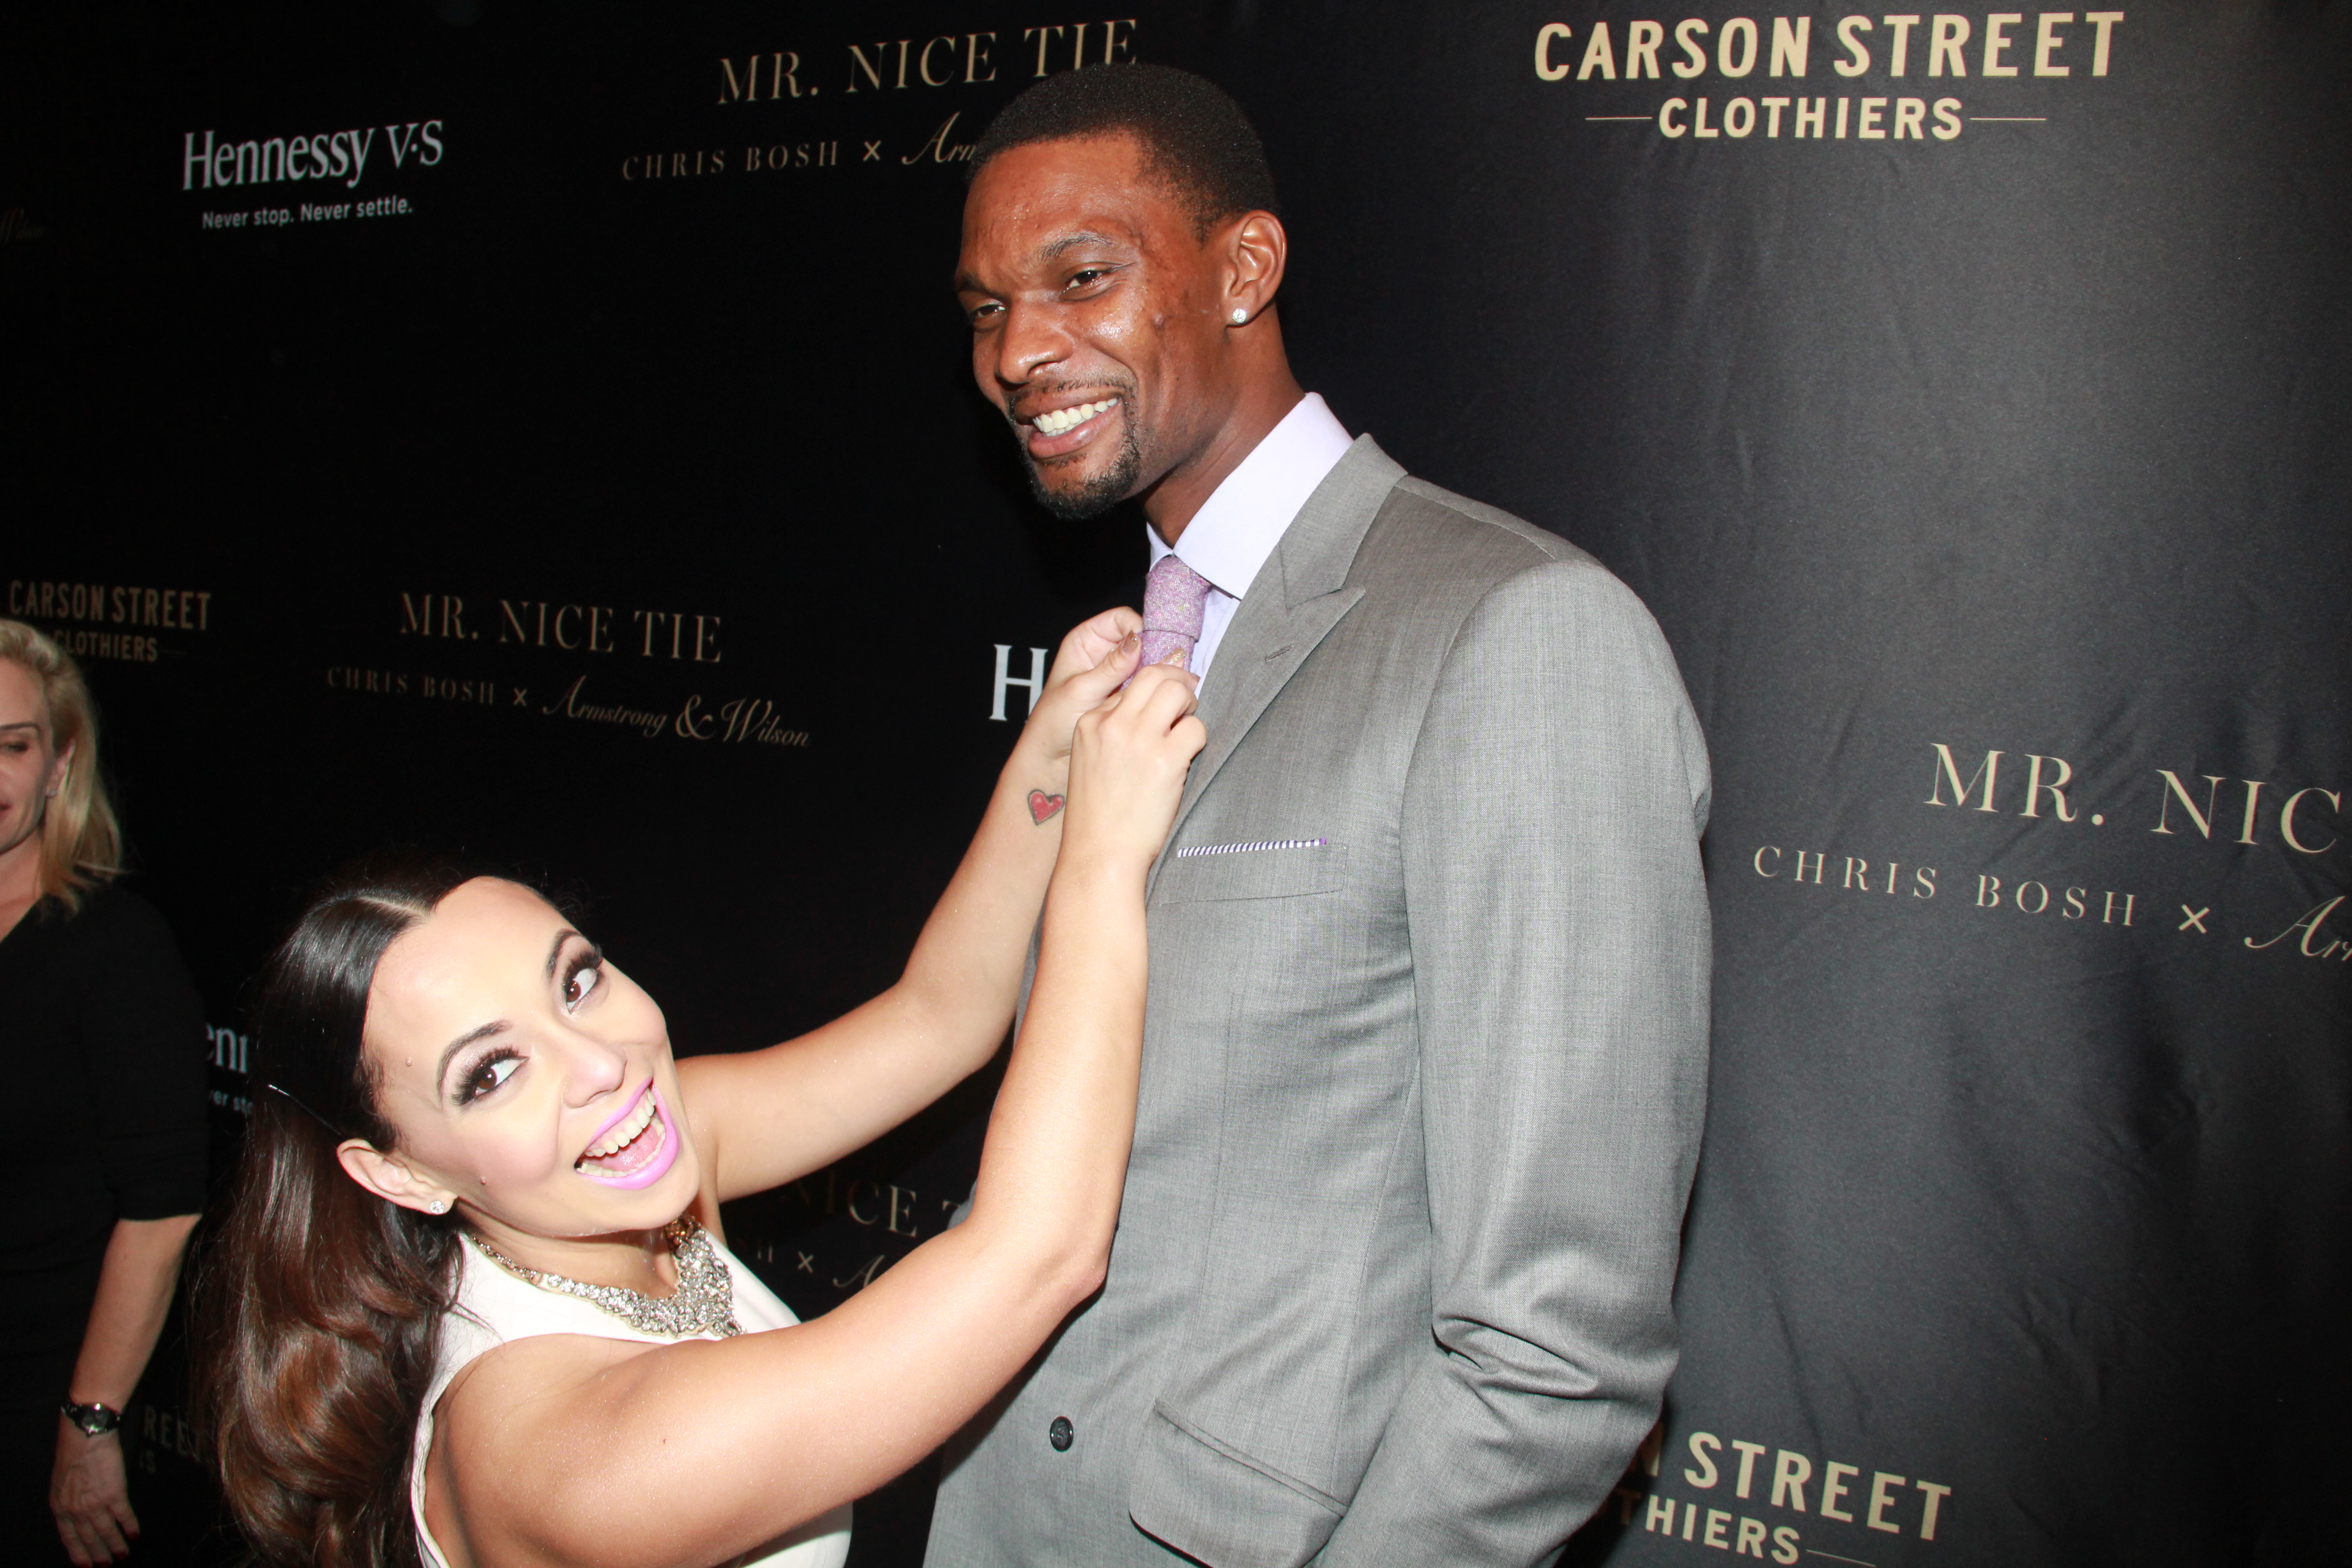 Chris-Bosh-Mr-Nice-tie-new-york-fashion-week-debut-armstrong-and-wilson-10